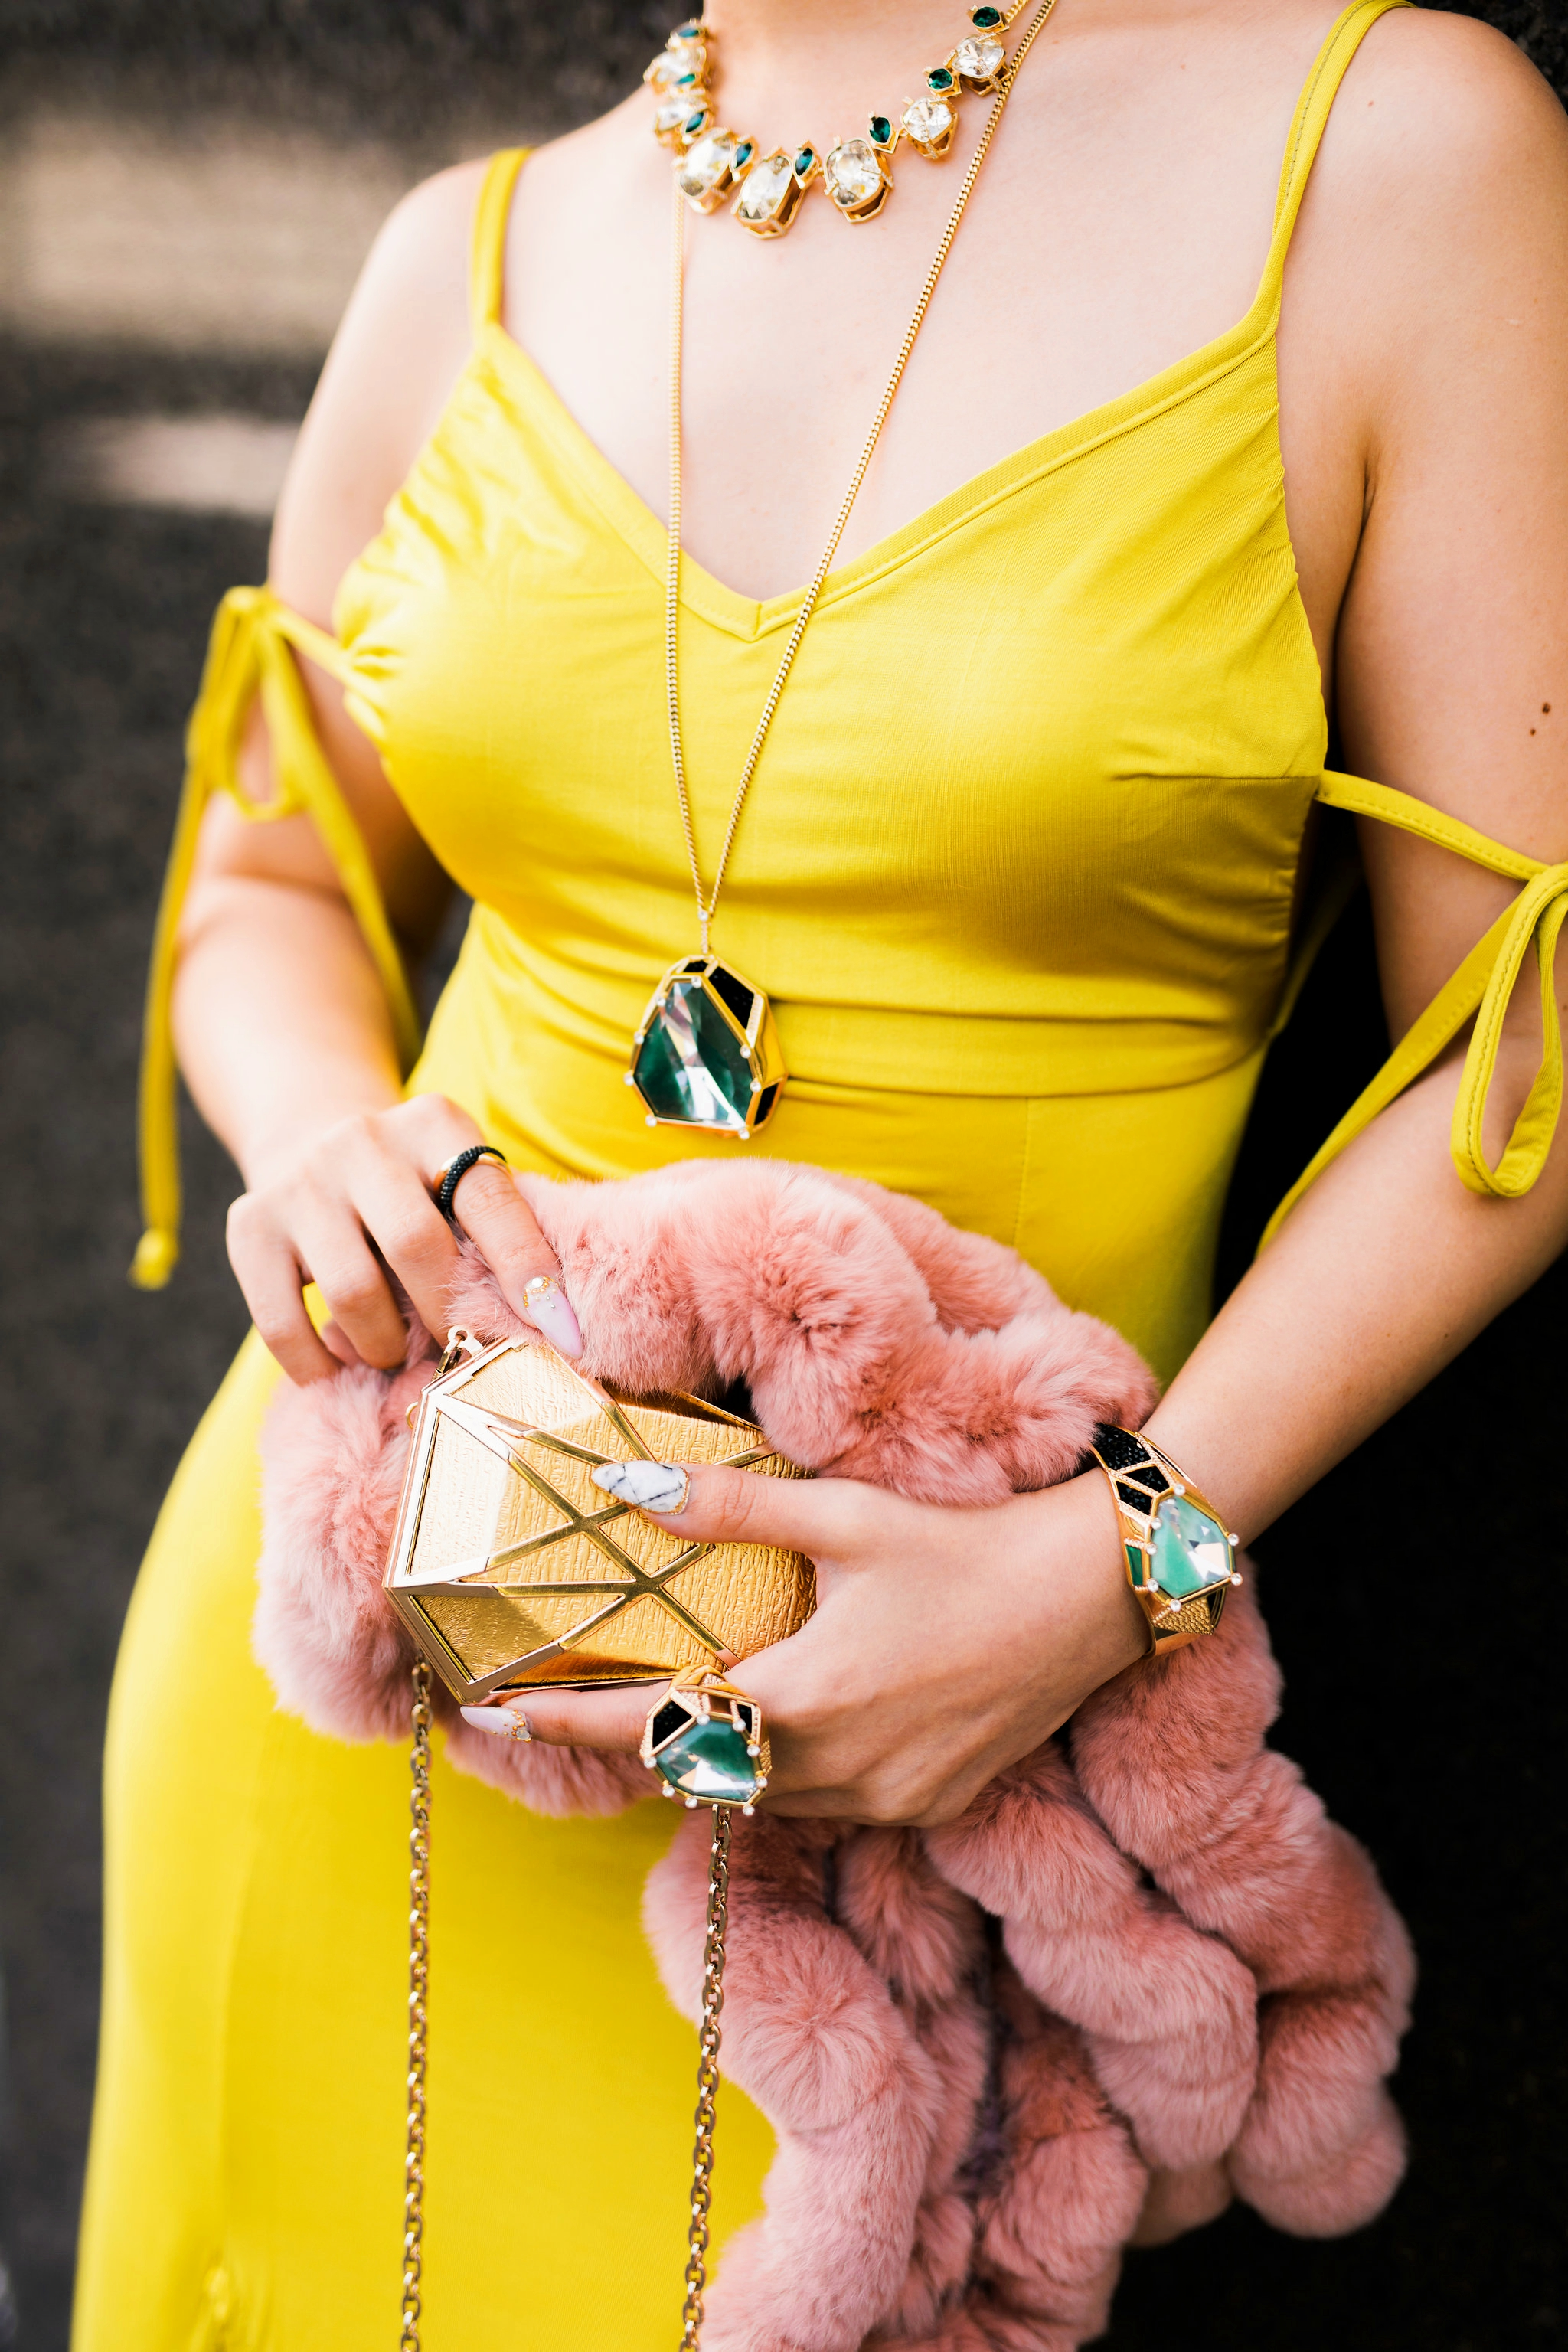 Nasty Gal yellow satin Long Term Maxi Dress-Zara Silver heeled sandals-Swarovski Rose Gold-Tone Crystal Chandelier Earrings-Huge Ring, Multi-colored, Gold plating-Swarovski Rose Goldplated Crystaldust Cross Ring-Swarovski Pave Crystal Pendant Necklace-Gold Clutch-Pink faux fur scarf-pink hair-settle fashion style blogger-petite-japanese-aika's love closet 10